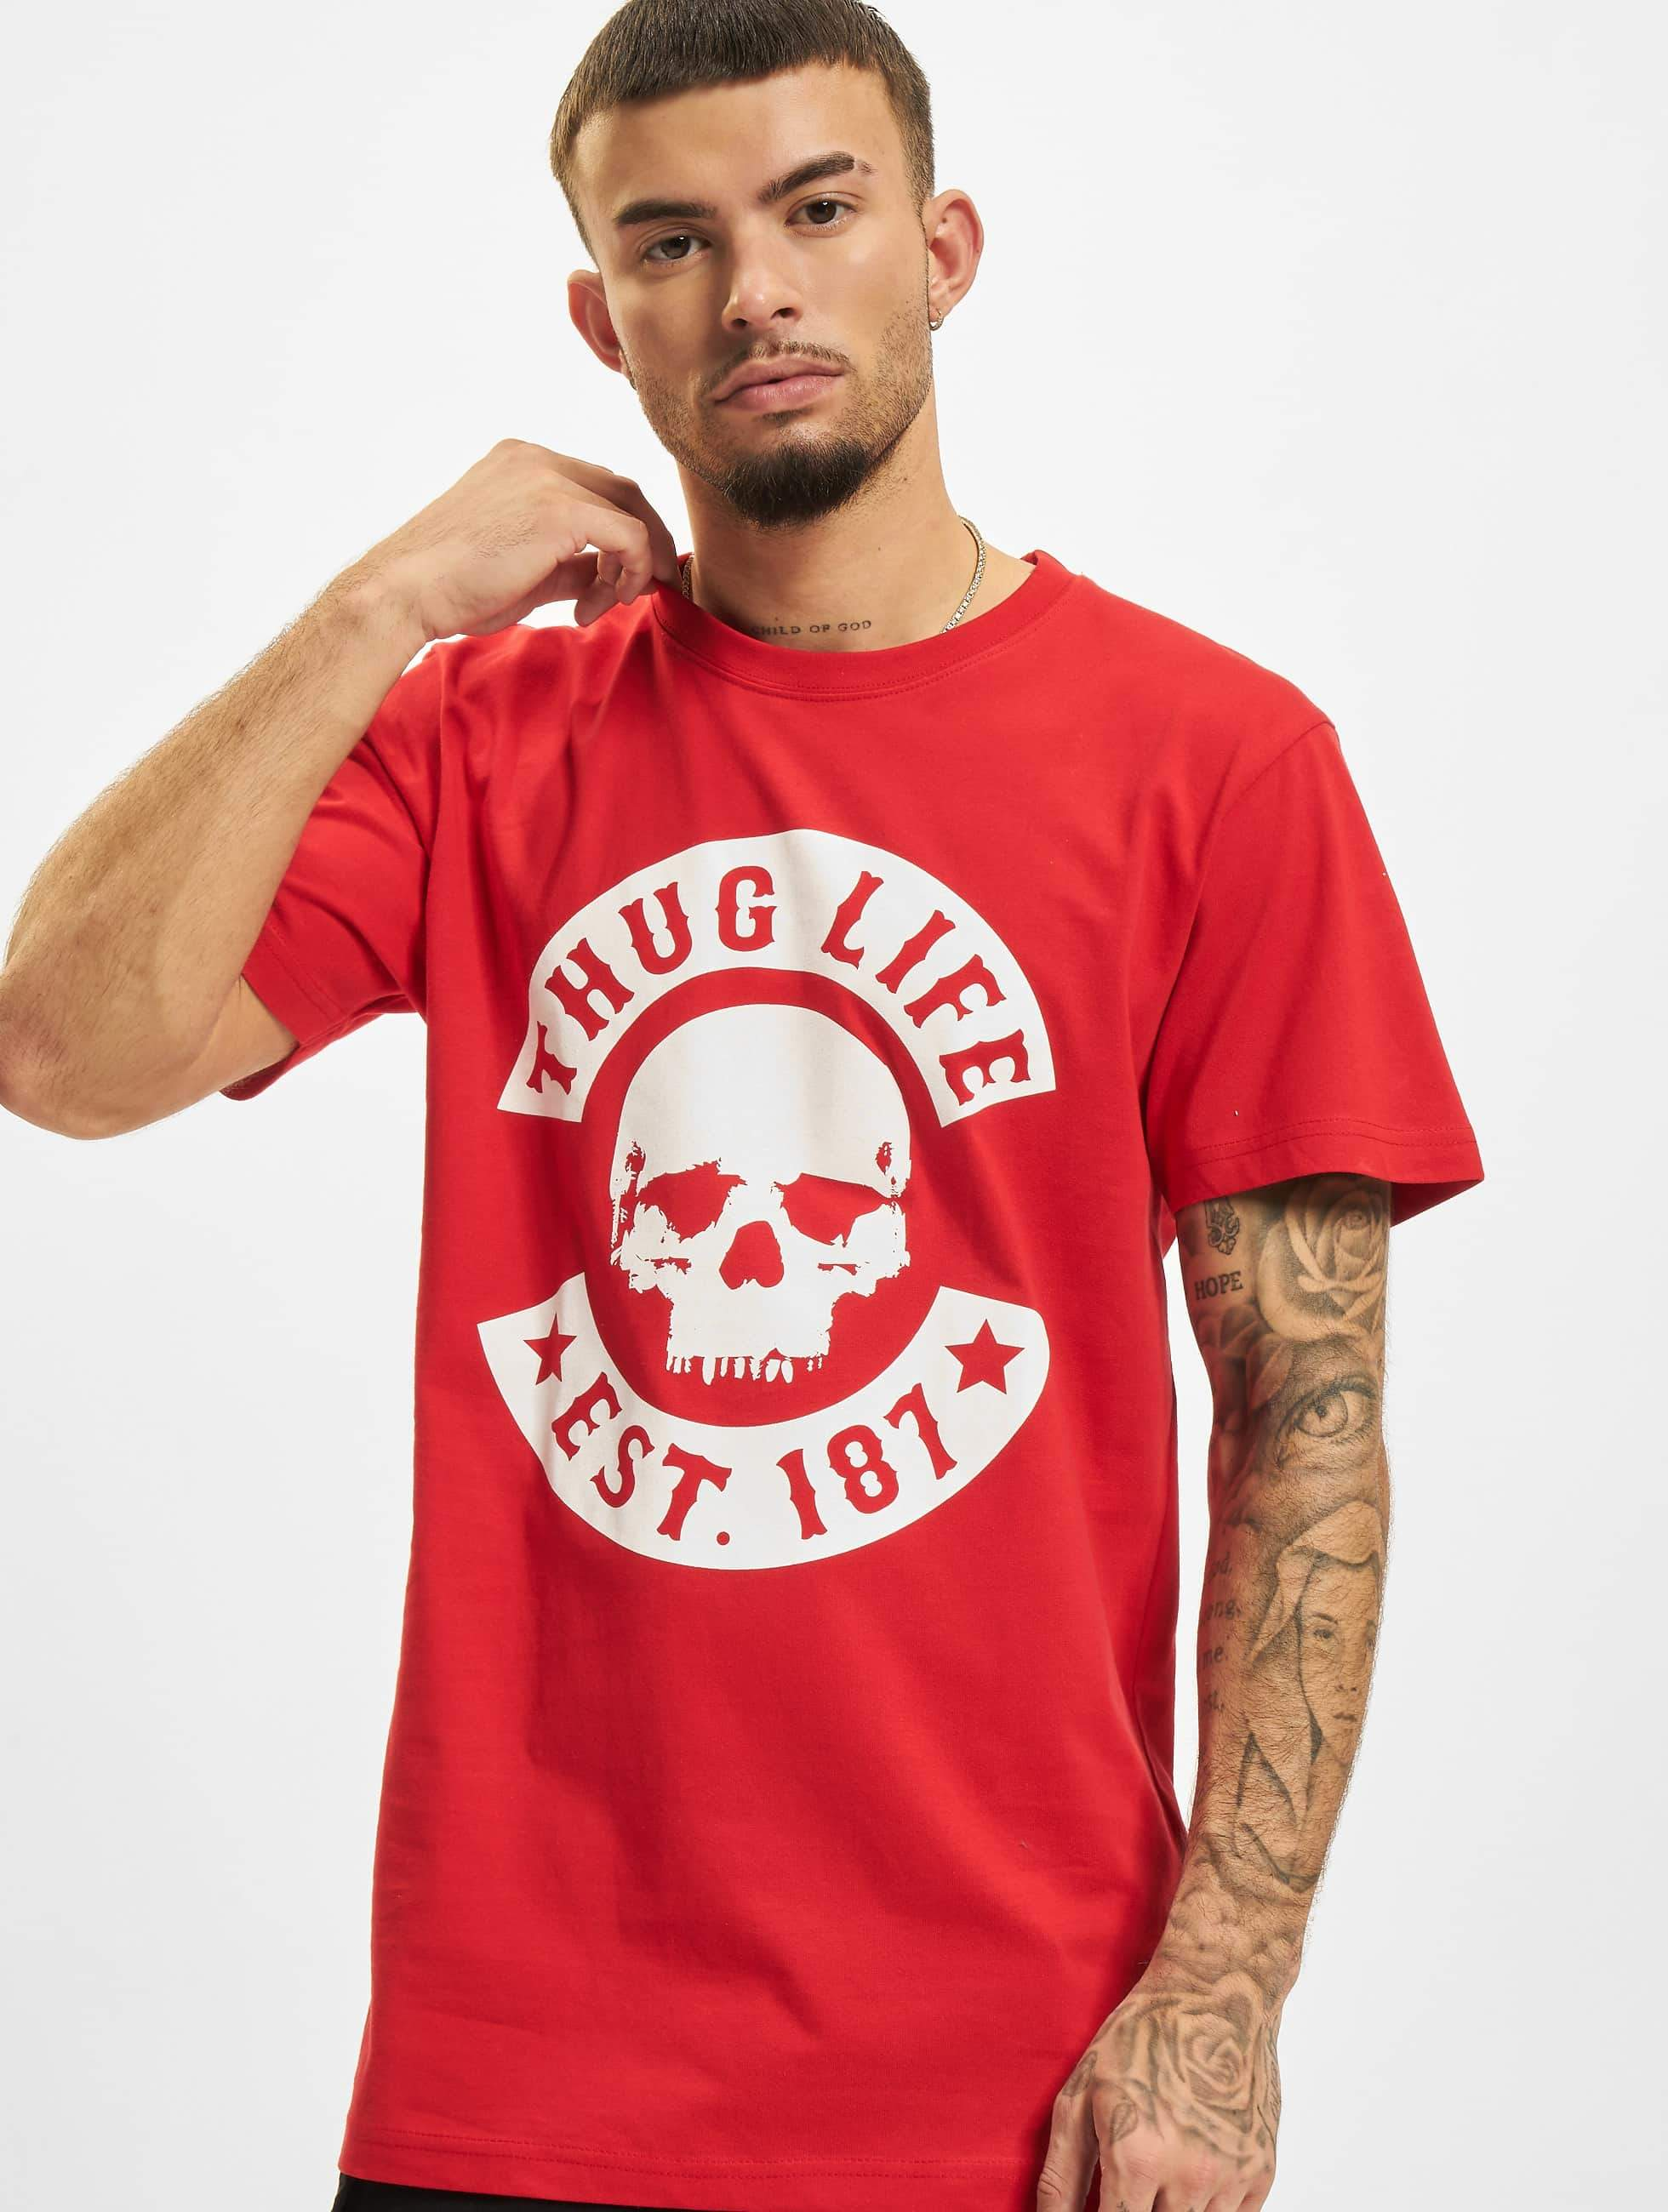 Thug Life / T-Shirt B.Skull in red XL